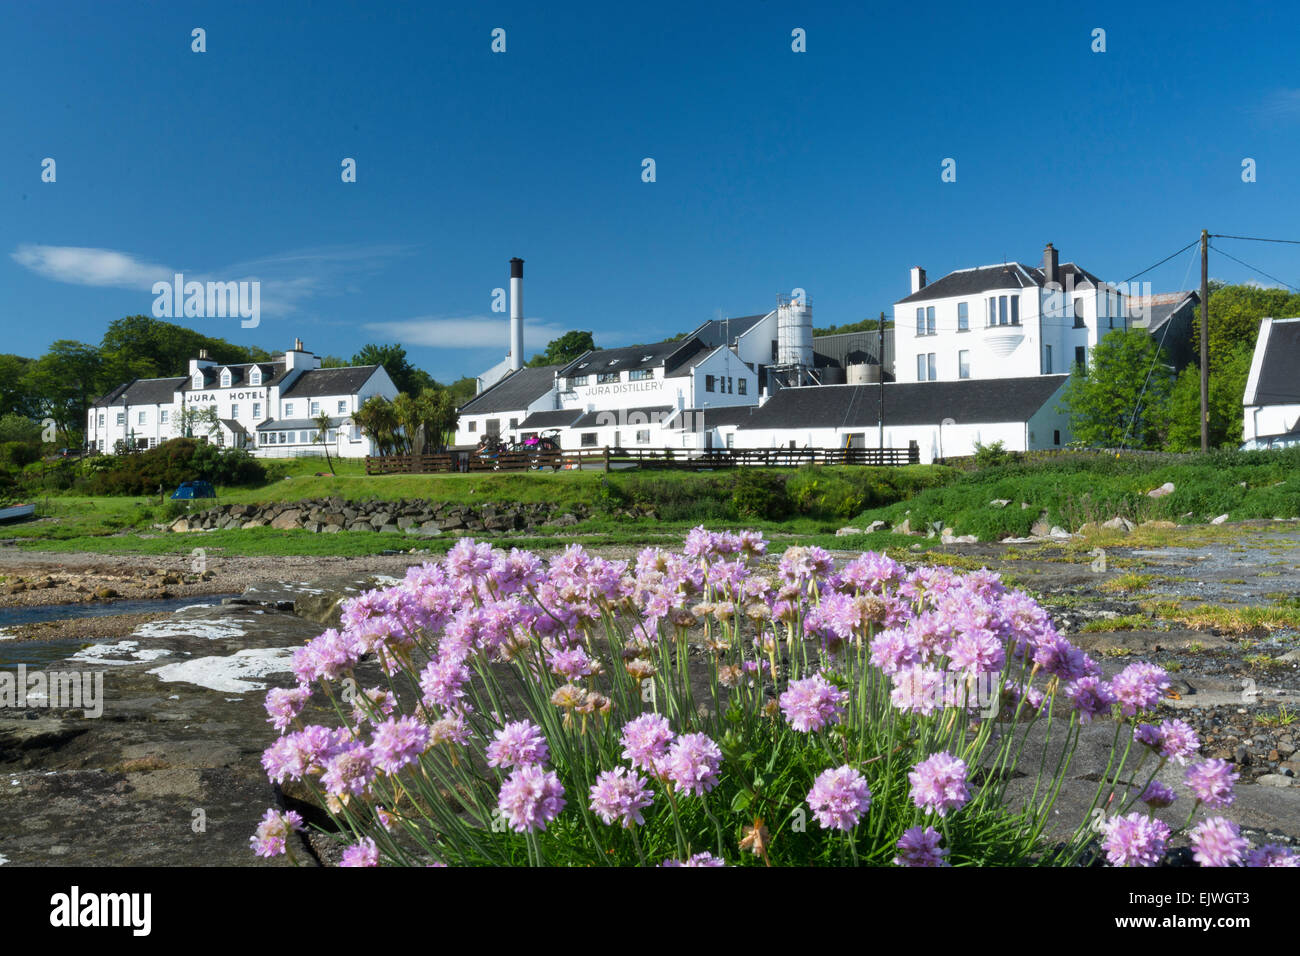 craighouse pier view of distillery thrift wild flowers - Stock Image